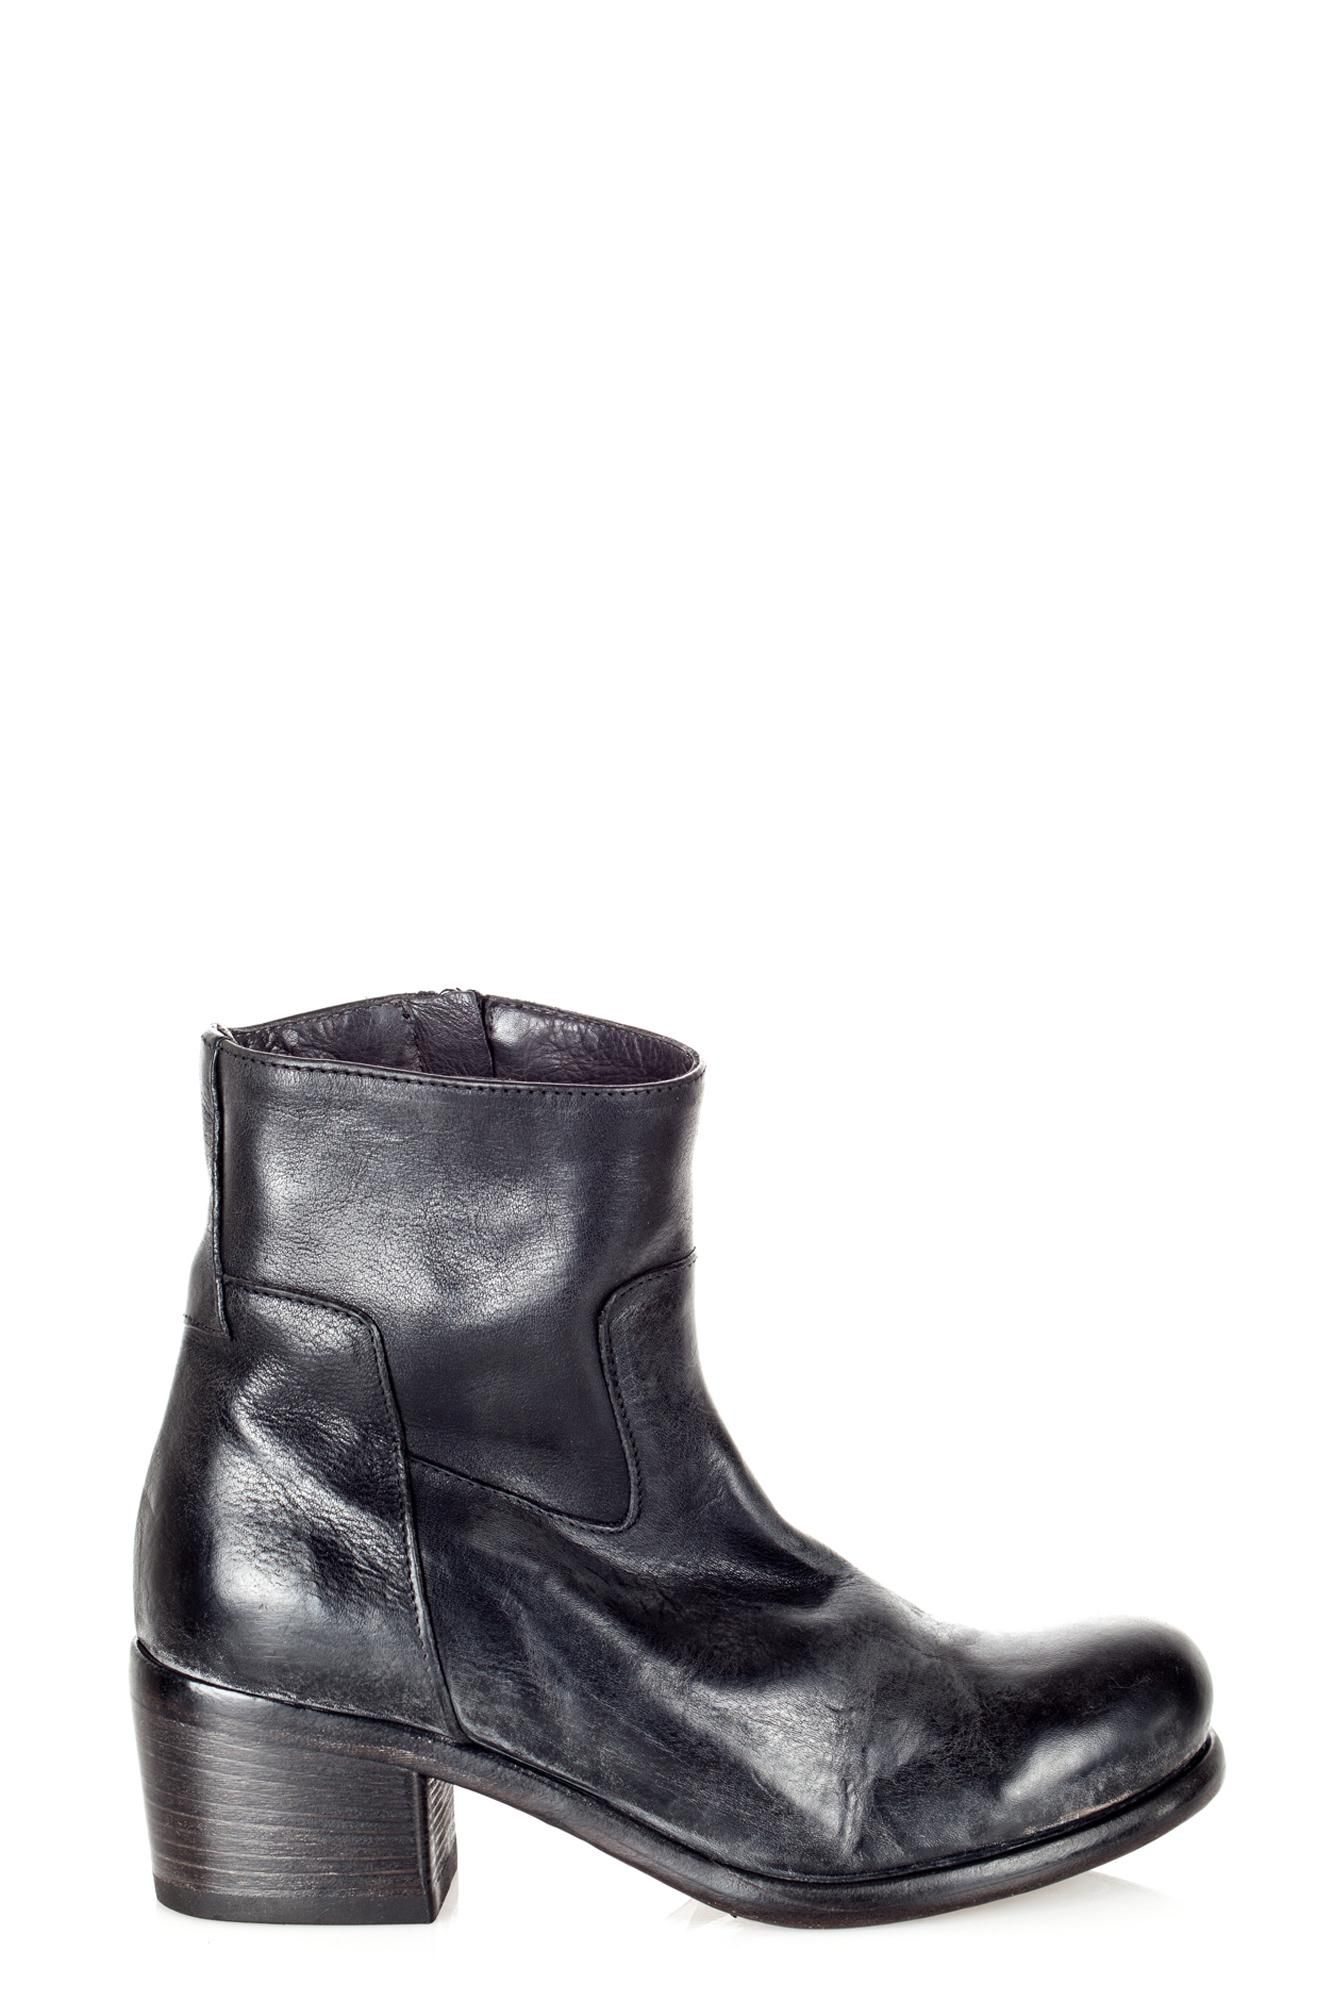 MOMA - LOW BOOTS - 240594 - BLACK - COMME TOI http://www.commetoi.it/eshop/index.php